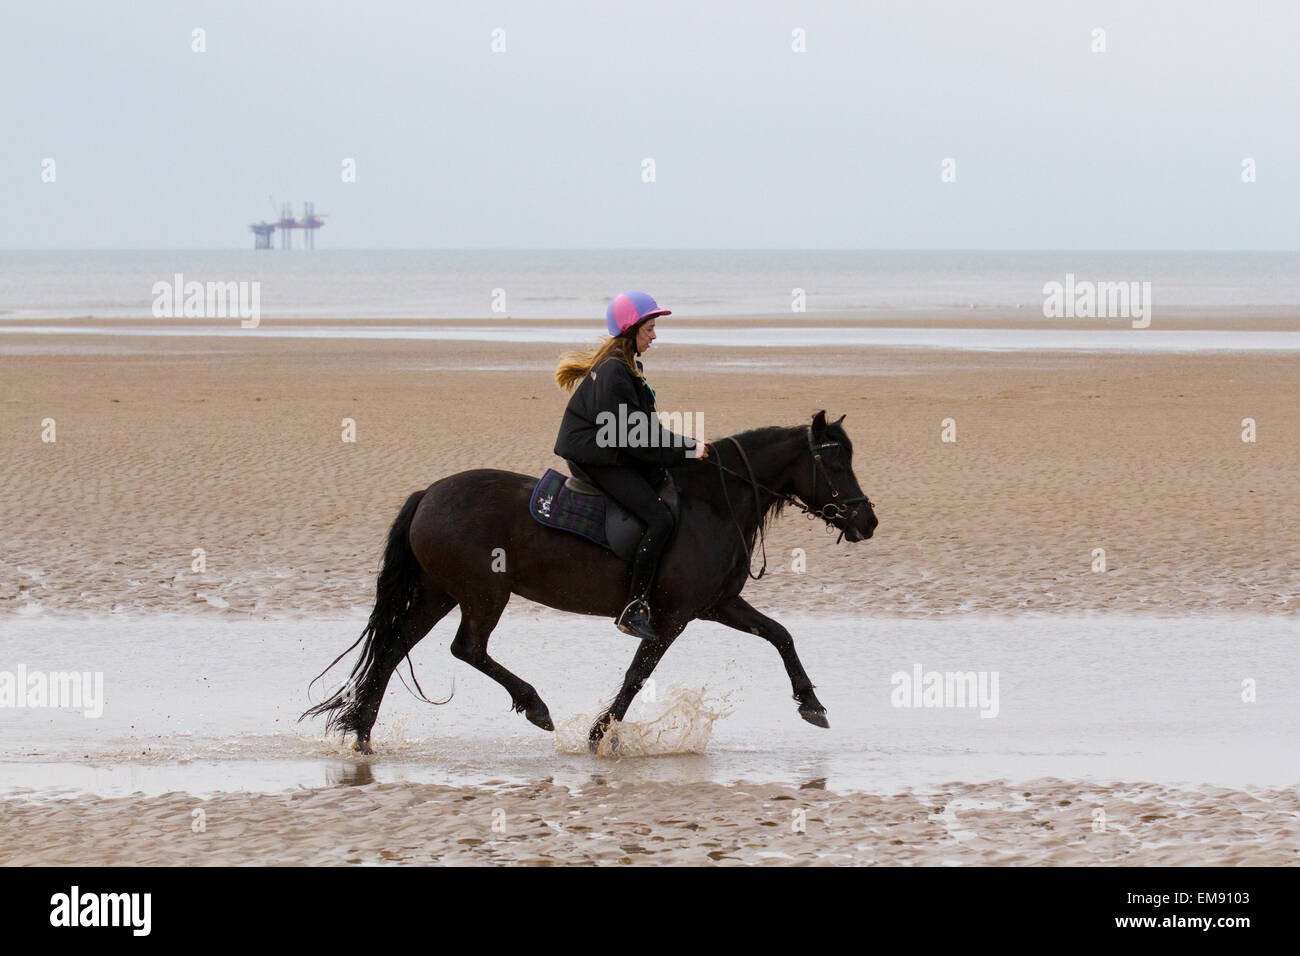 Horse riding on Ainsdale beach, Southport, Merseyside, UK. 17th April, 2015. UK Weather. Horses, Activities, sports - Stock Image